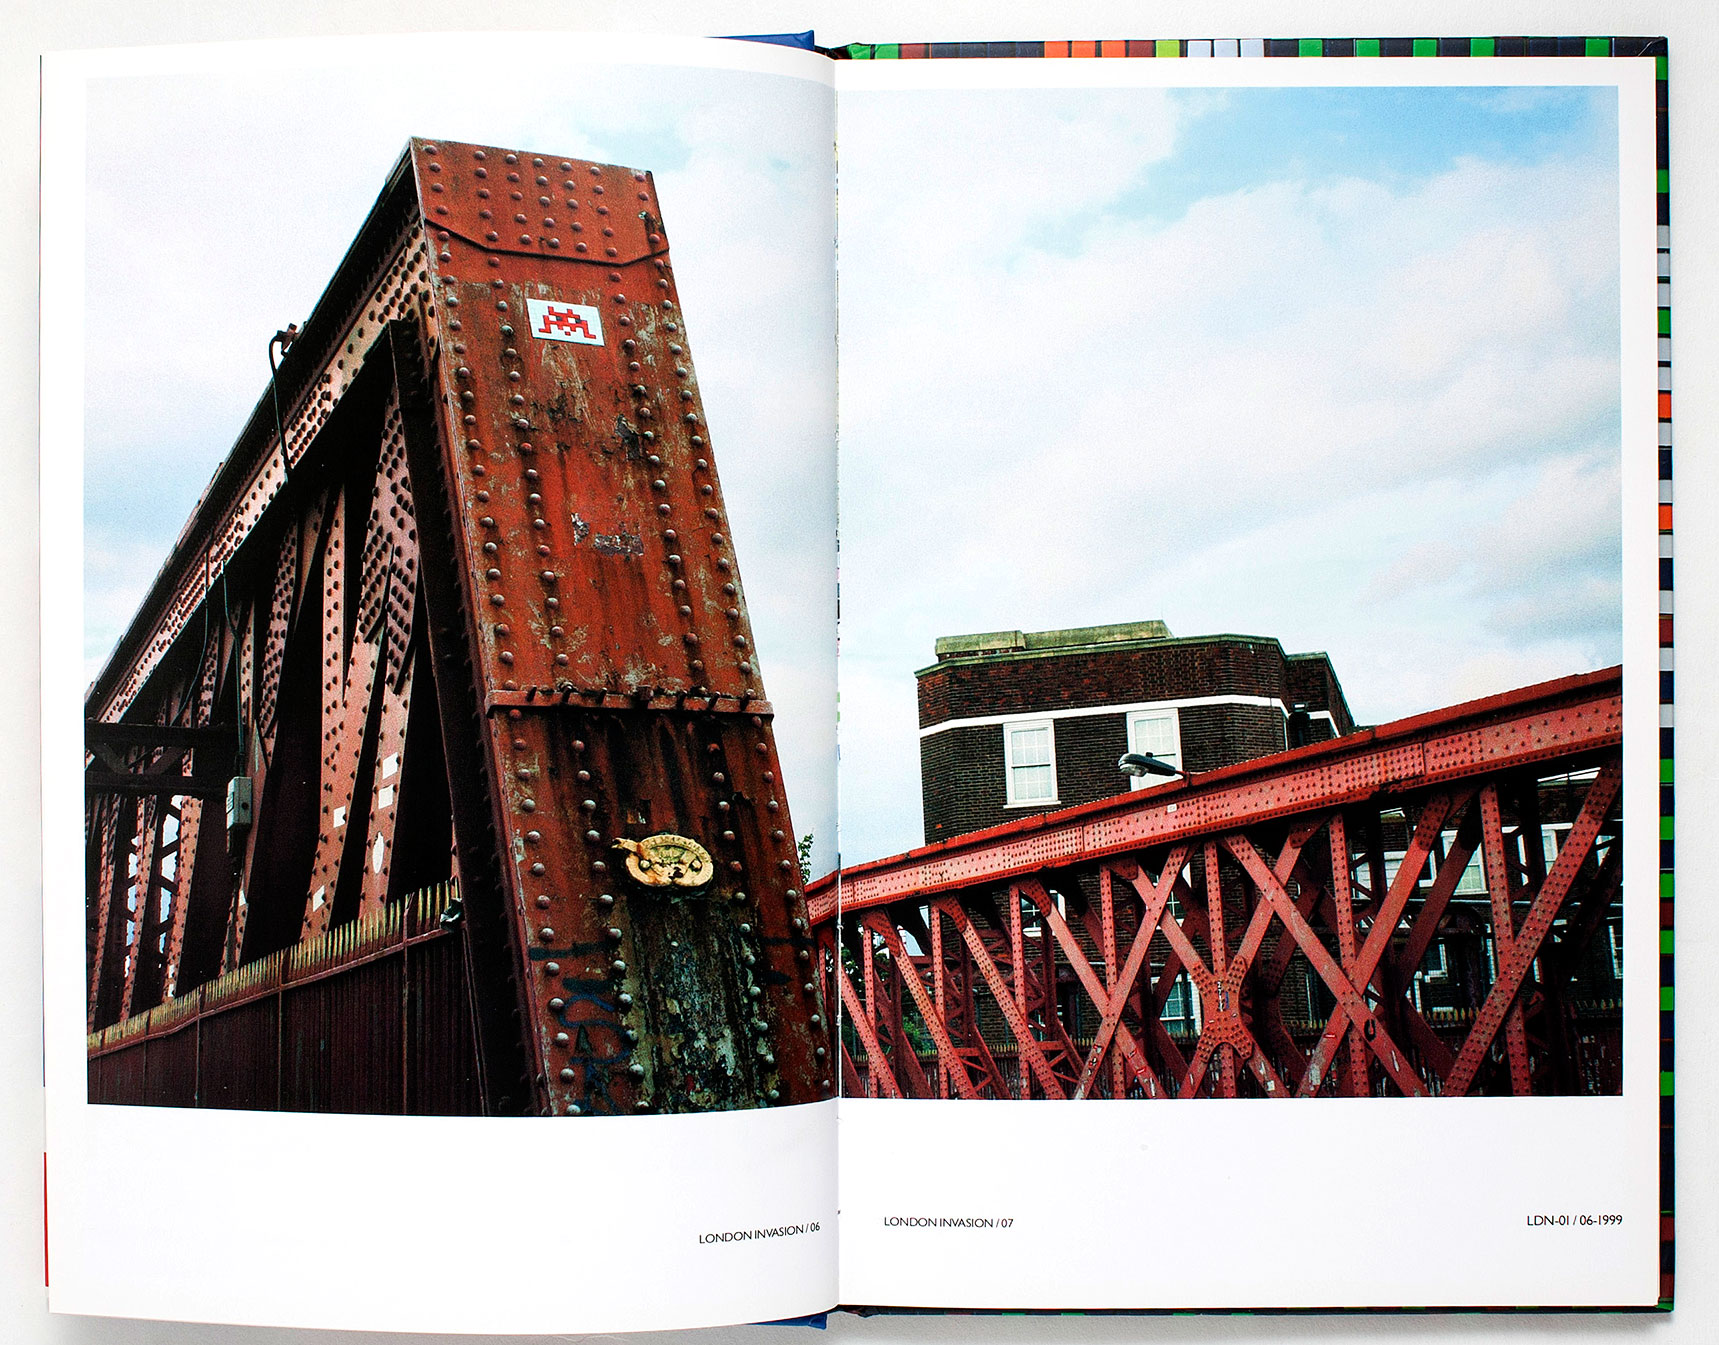 epm-print-management-bristol-art-books-3.jpg